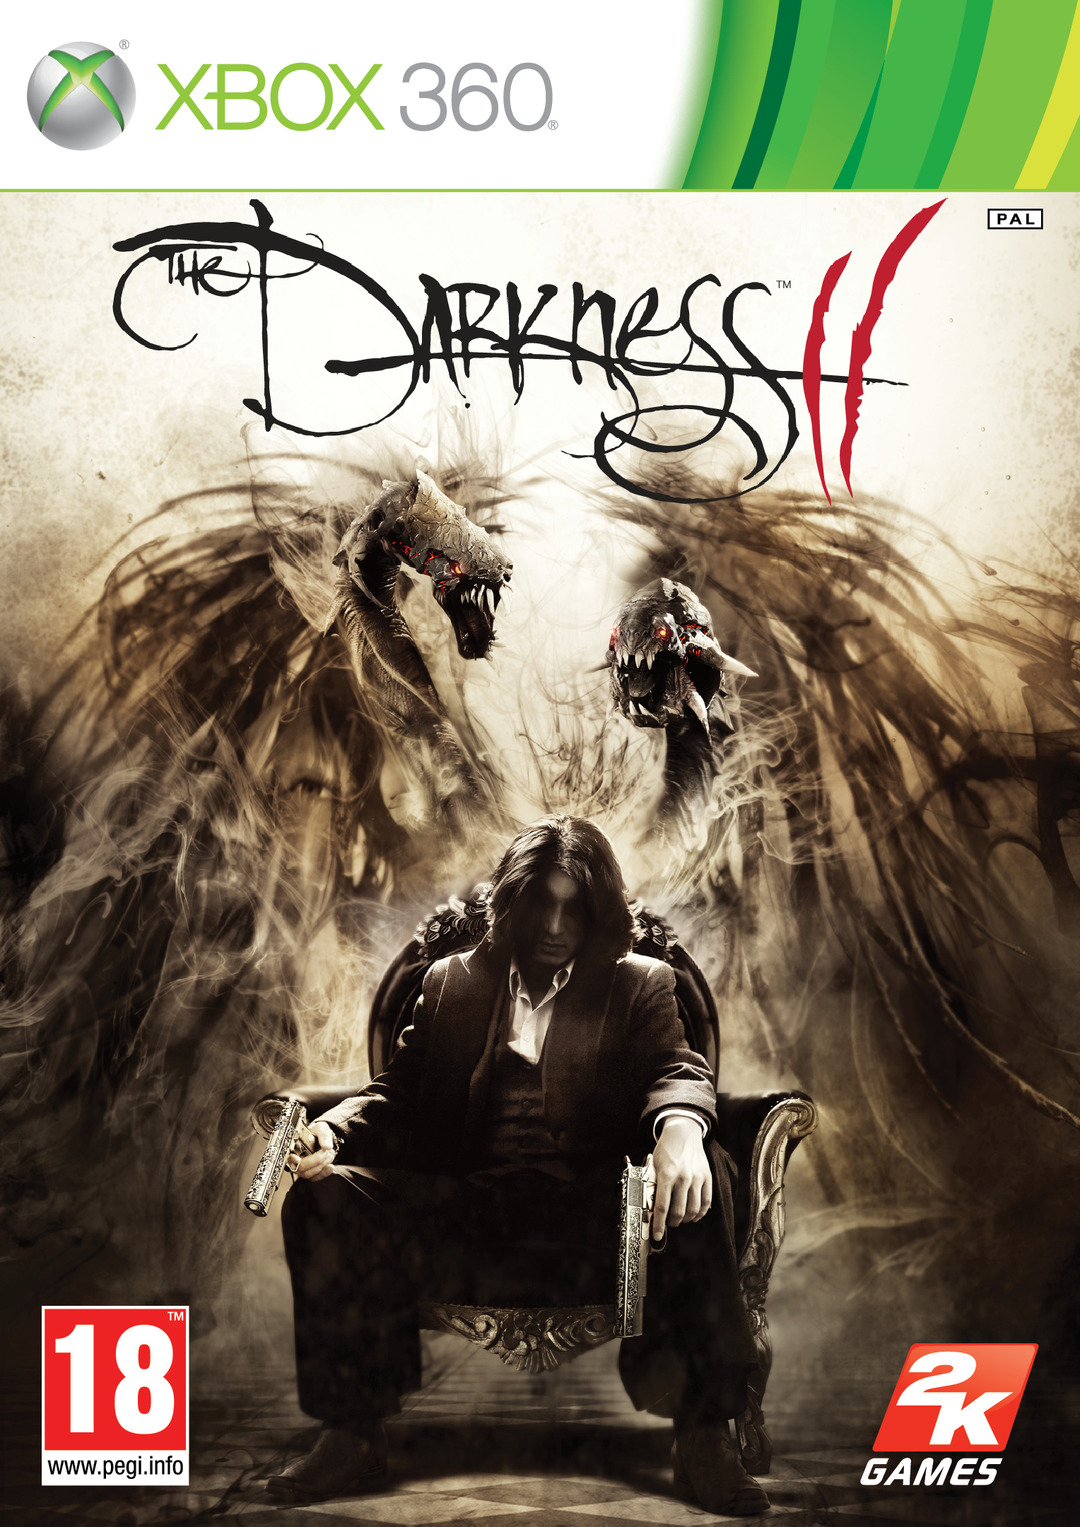 THE DARKNESS 2 XBOX360 (exclue) [DF]